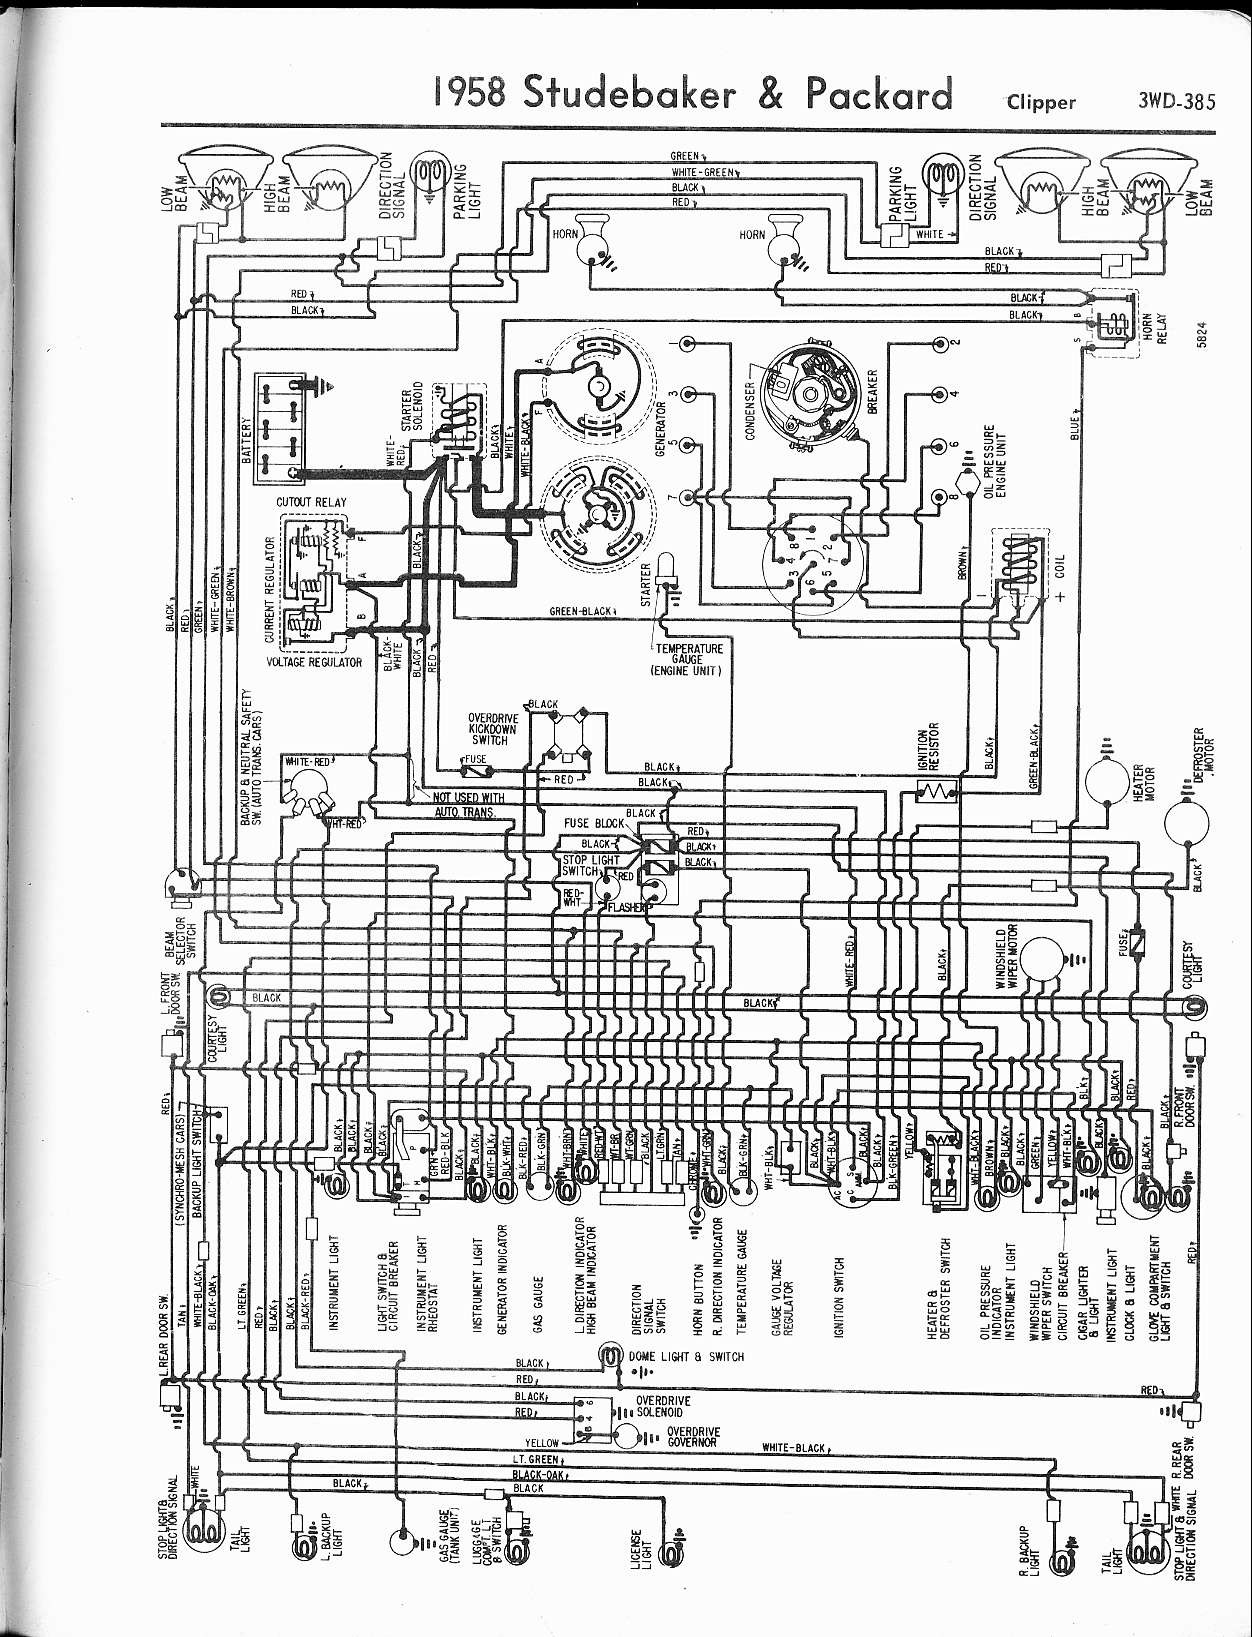 Wrire Schematic for A 1989 Ezgo Textron Model Xi875 Home Light Switch Wiring Diagram Of Wrire Schematic for A 1989 Ezgo Textron Model Xi875